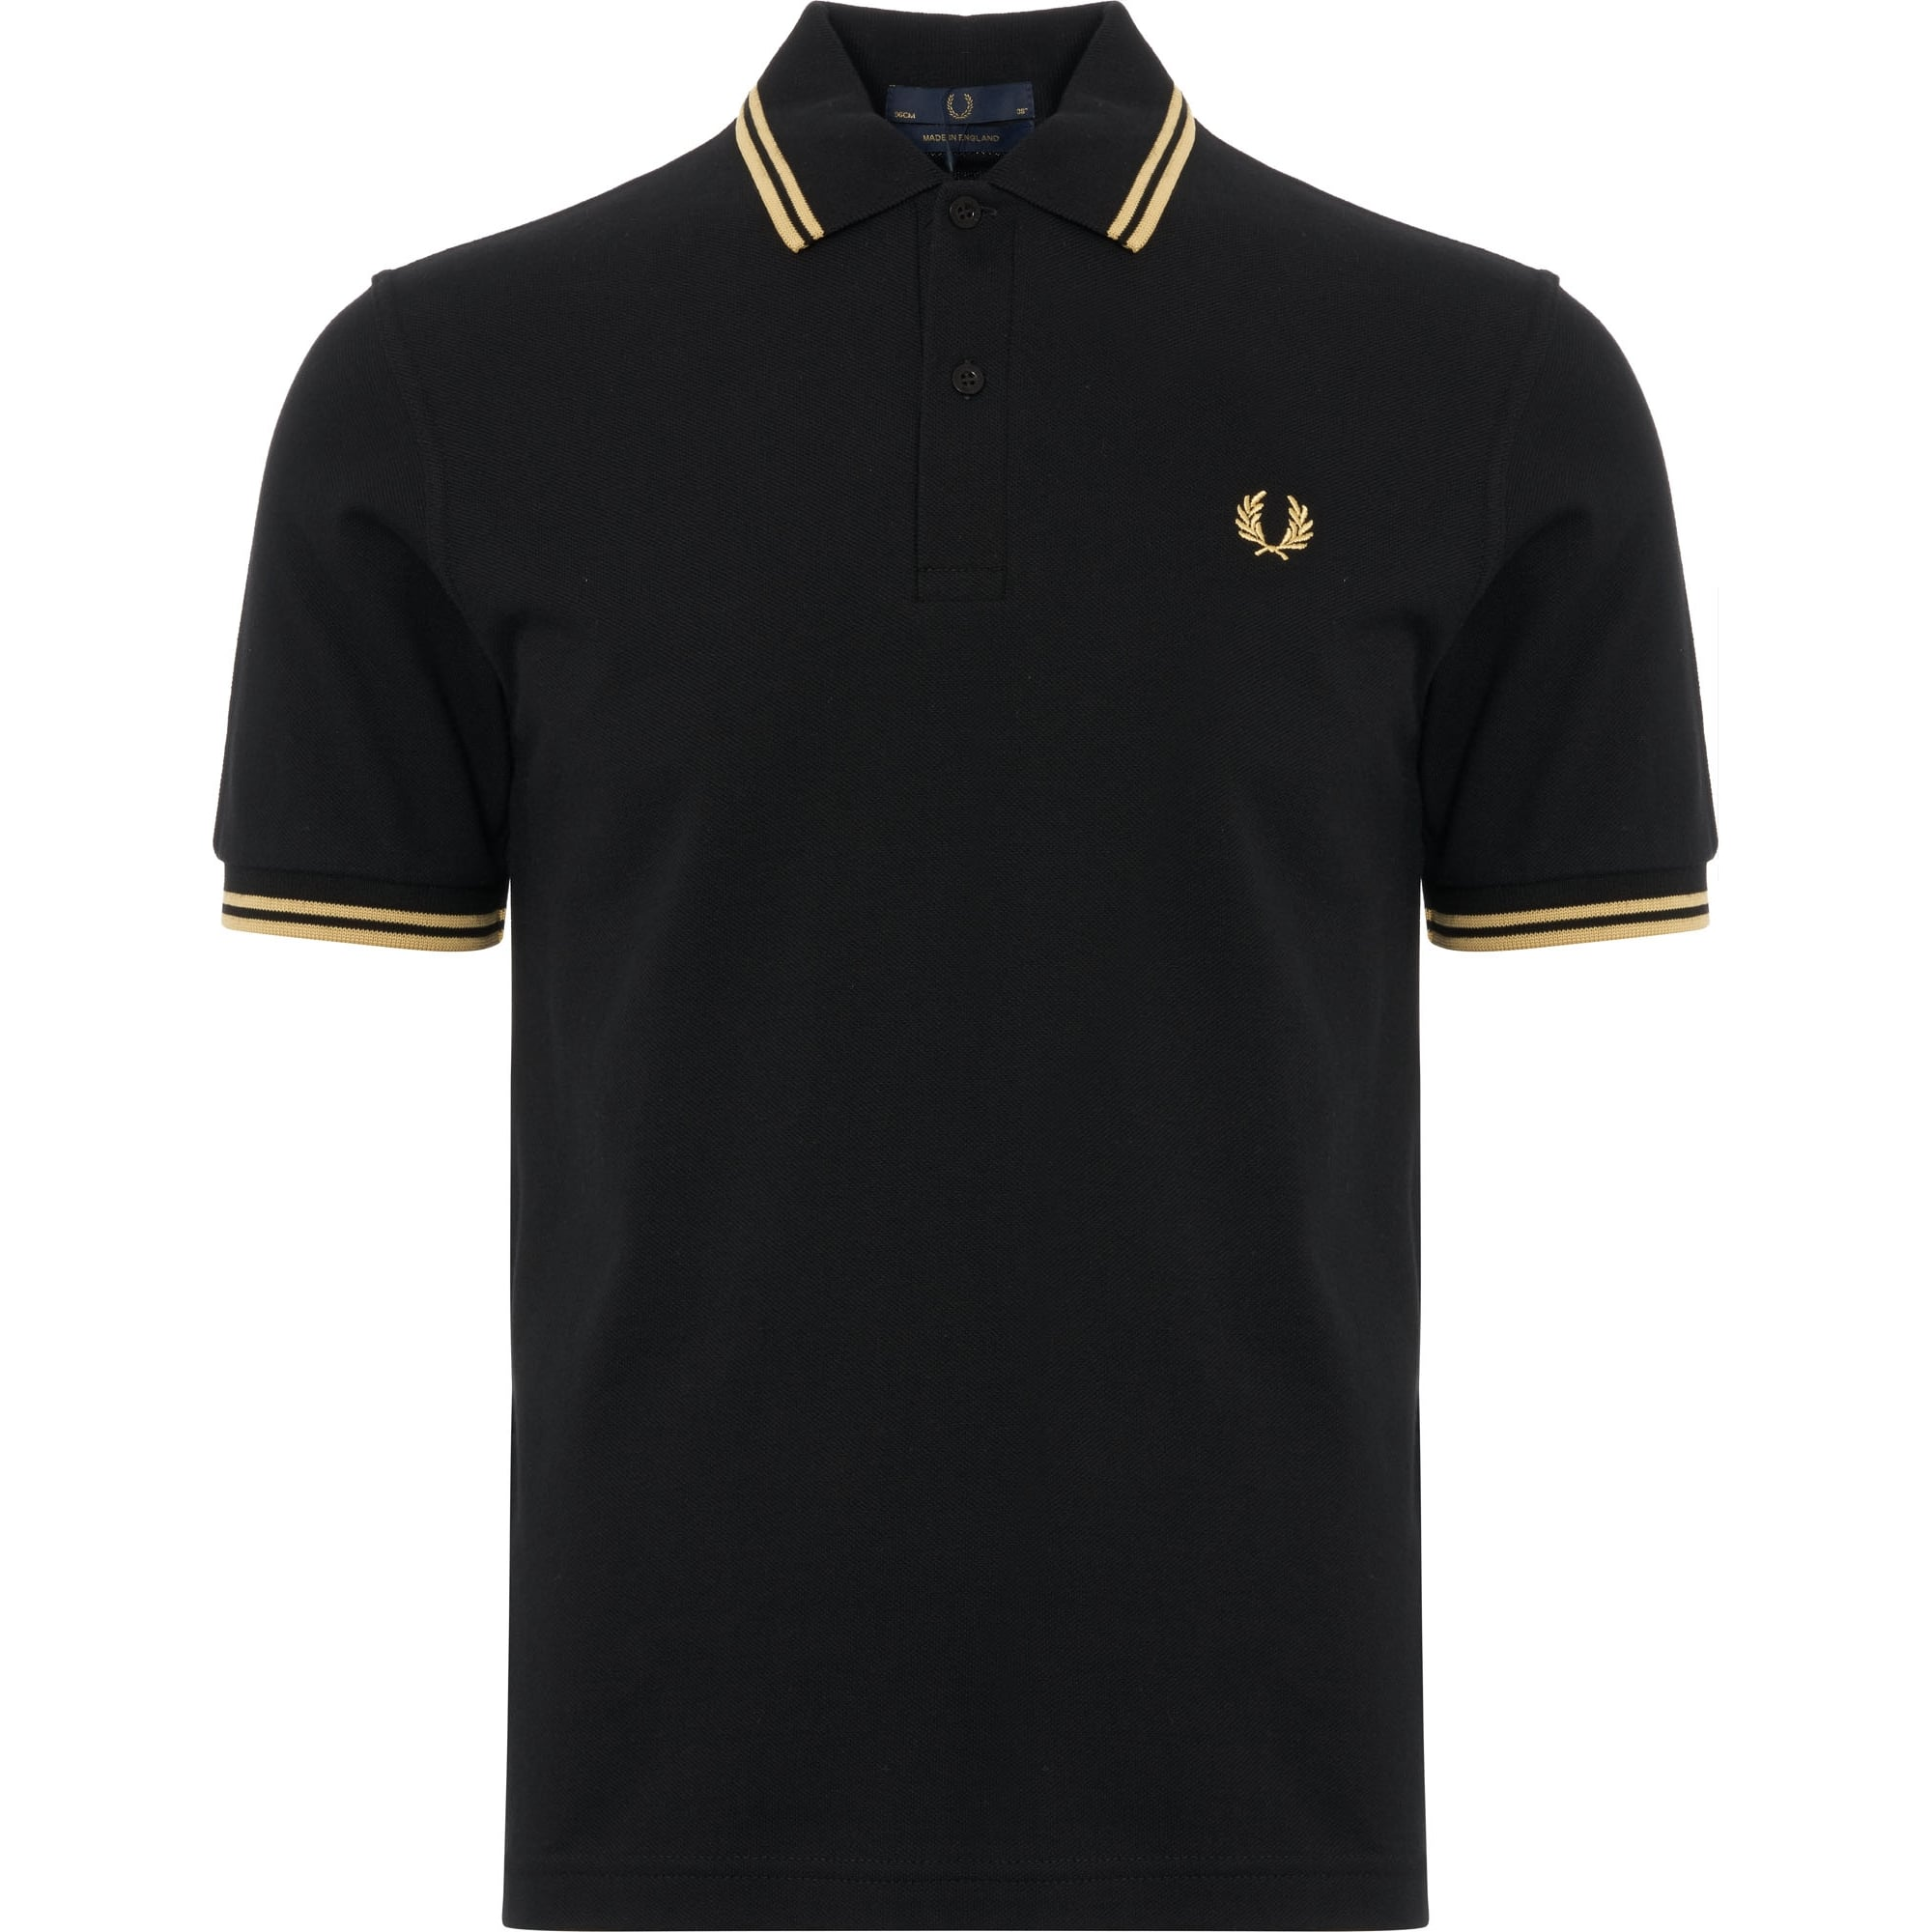 4308e179 discount holloway polo shirts 43ba8 f7689; reduced twin tipped polo shirt  black gold 98ac0 445d0